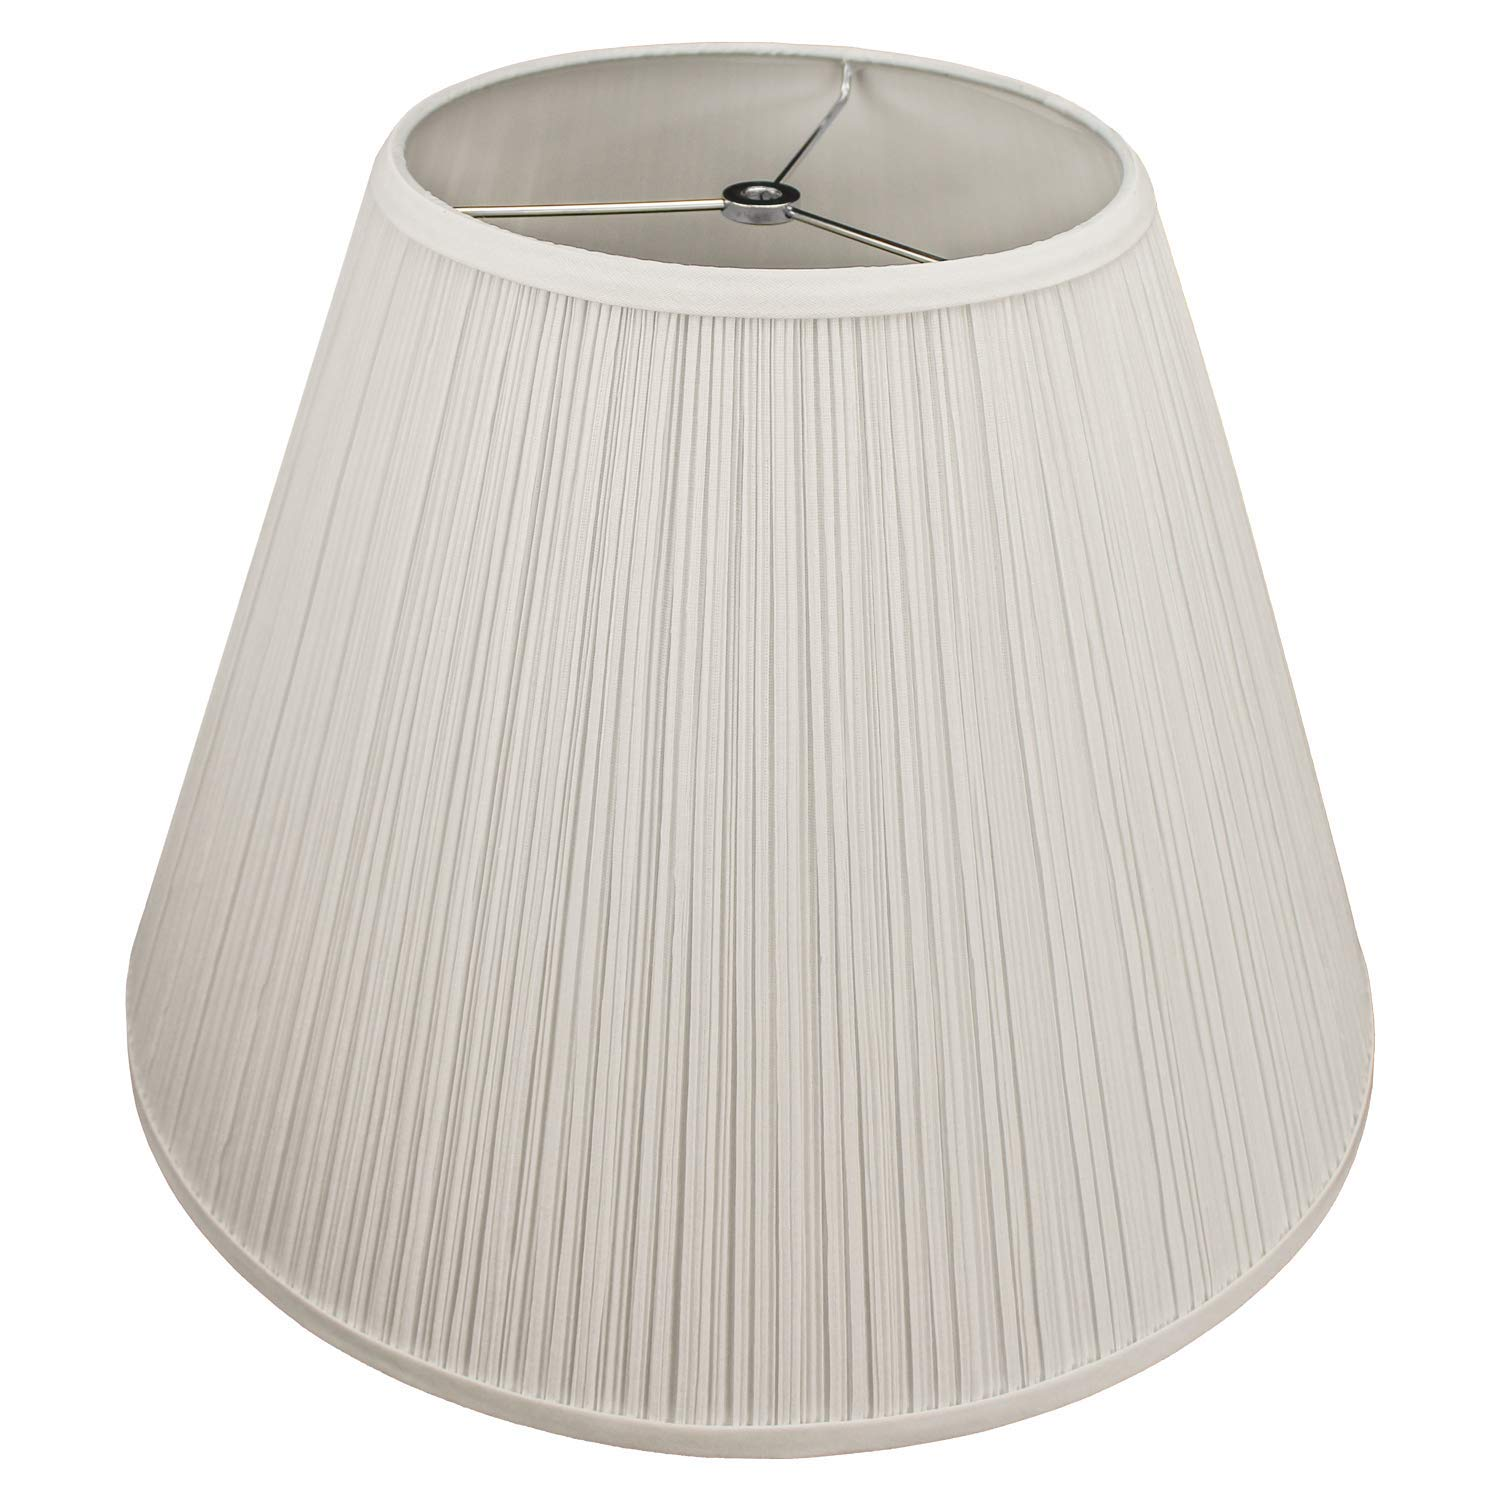 FenchelShades.com Lampshade 9'' Top Diameter x 18'' Bottom Diameter x 13'' Slant Height with Washer (Spider) Attachment for Lamps with a Harp (Pleated Cream) by FenchelShades.com